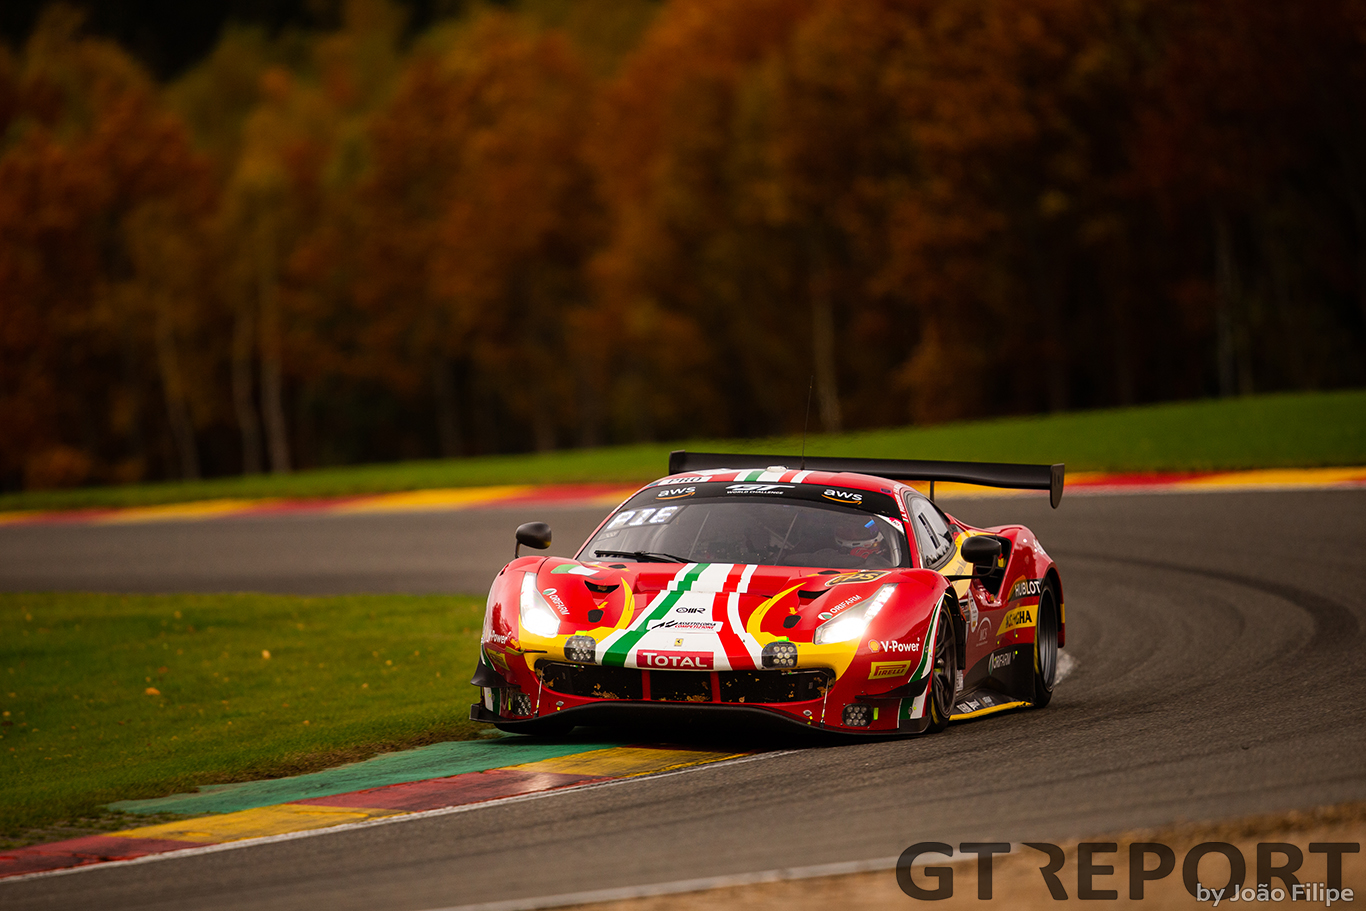 GT World Challenge Paul Ricard race report: AF Corse claims race win and title with late strategic call